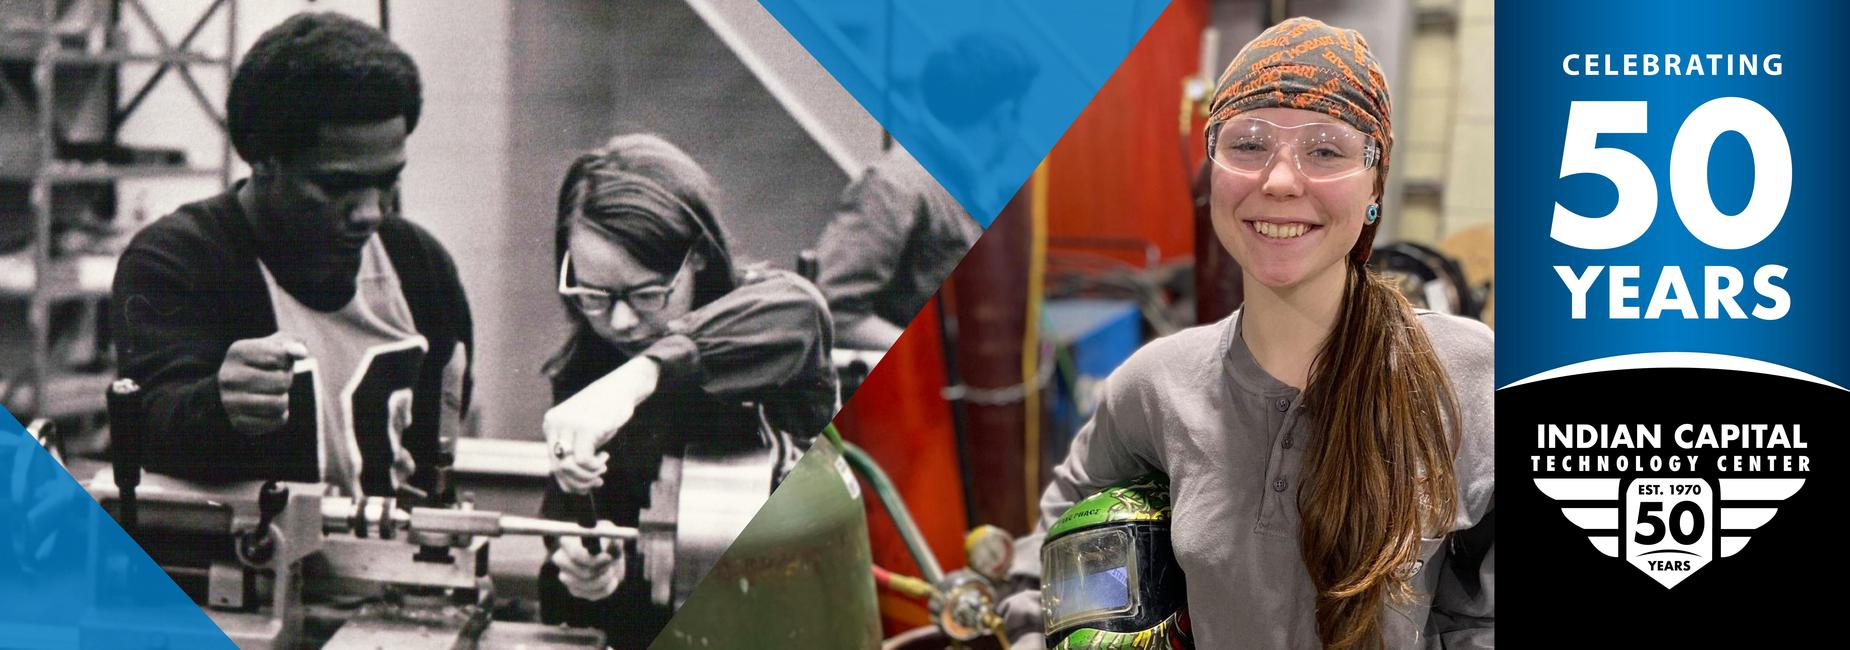 Two images. First image is a old black and white photo from the 70's of two students working together in a machine shop. The second photo is a current photo of a female welding student. Text reads: Celebrating 50 Years.